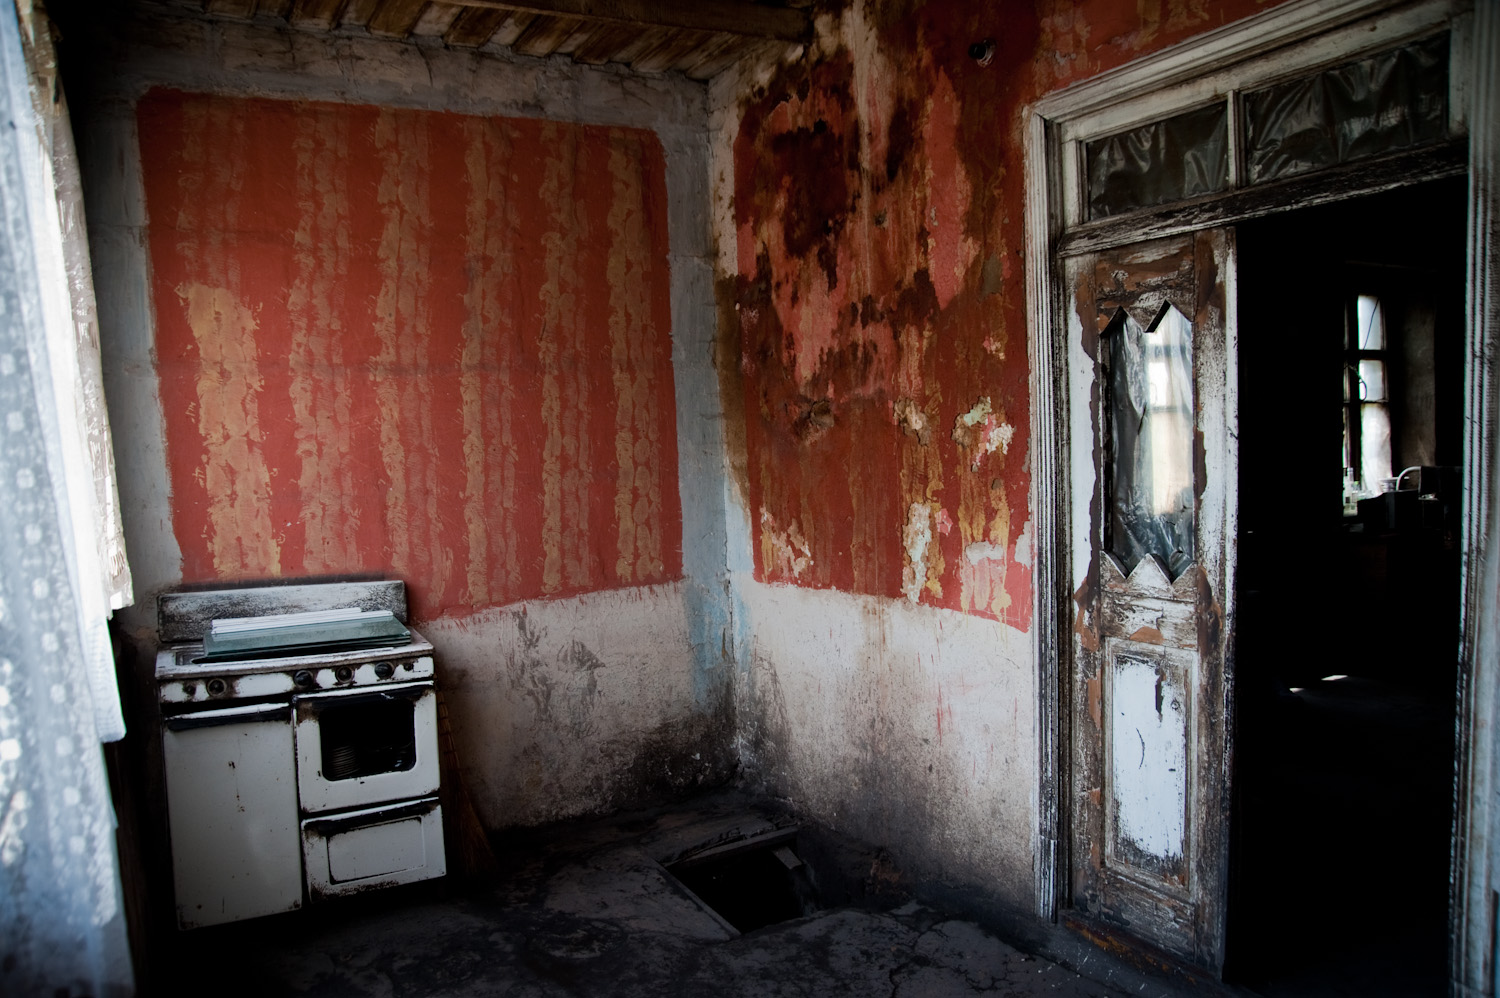 Nune owns only a stove and three iron bed frames with no mattresses. The walls of the family's home in Getap village have been blackened with soot. They get by on natural light because they cannot pay the electricity bill.